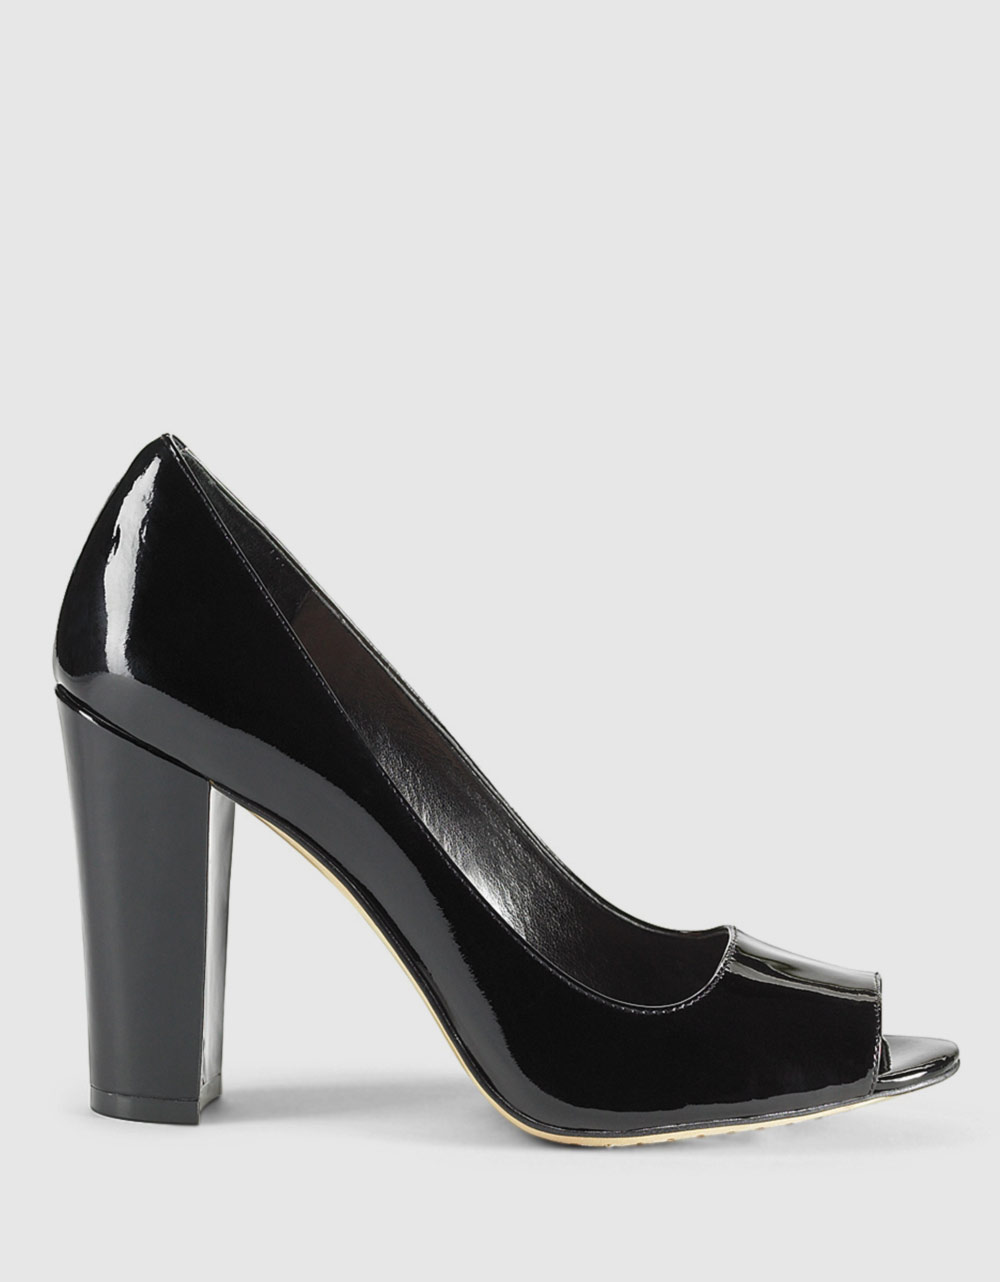 Vince Camuto Riston Patent Leather Pumps In Black Lyst